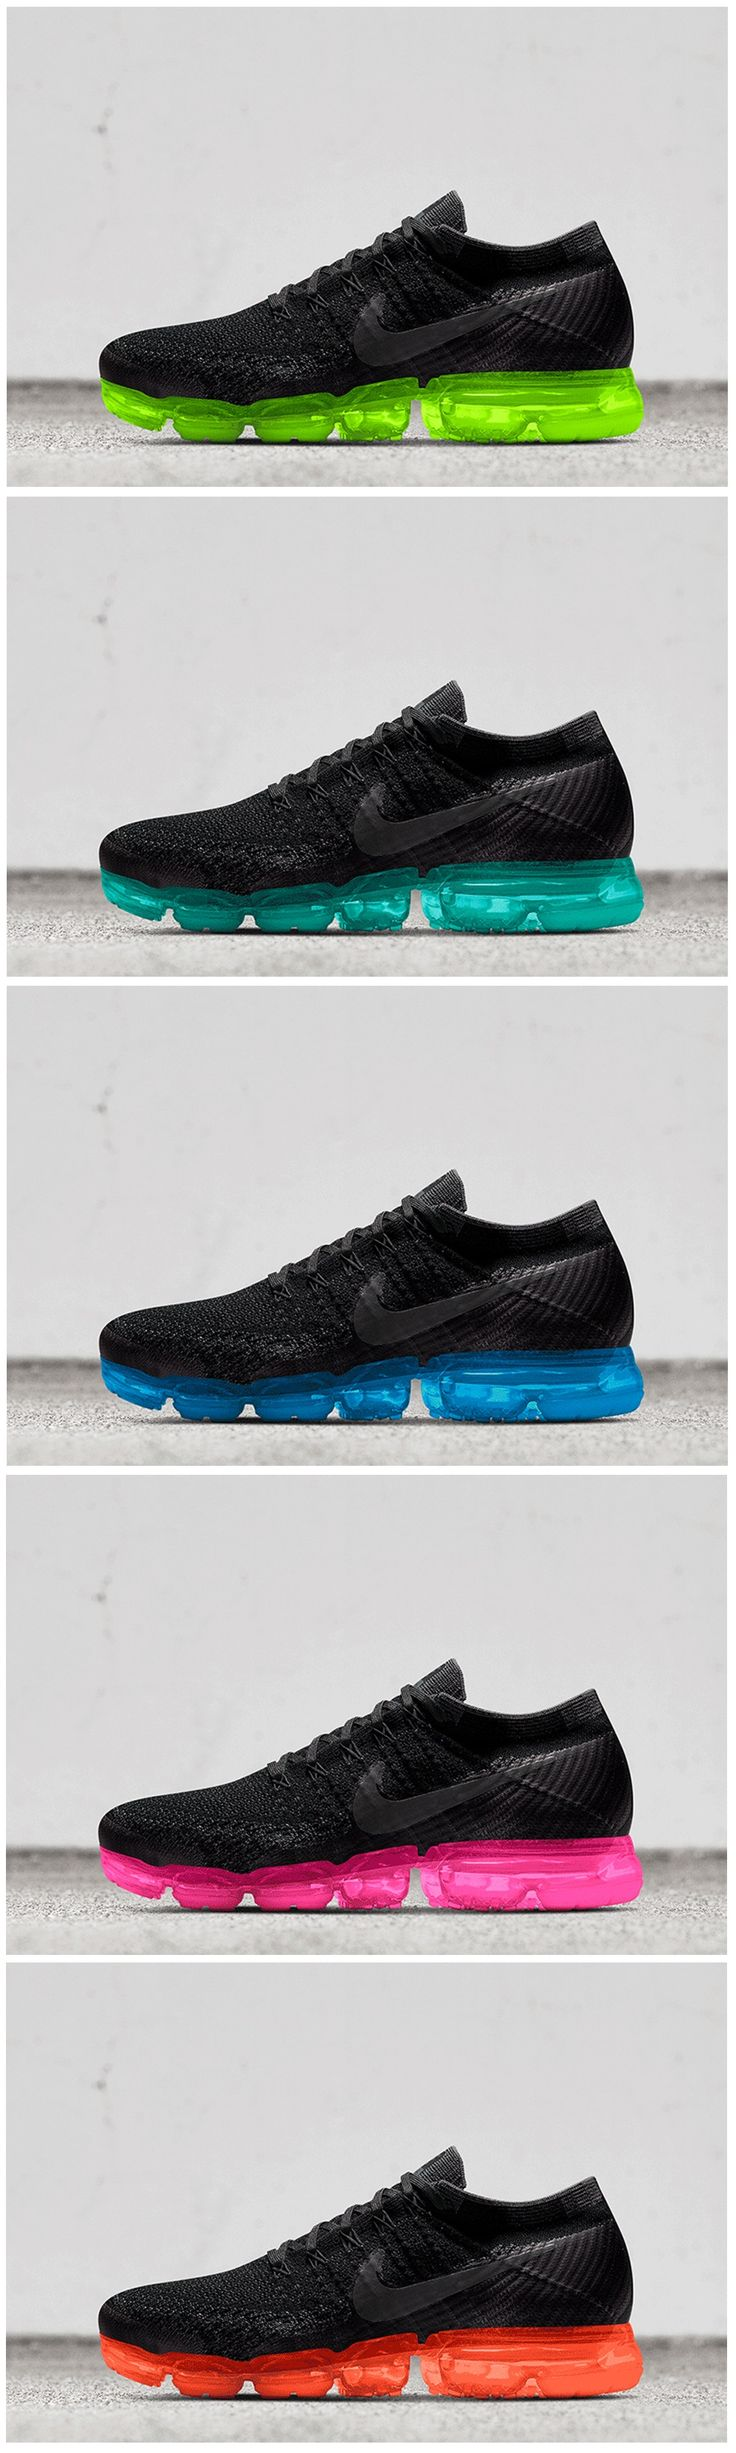 Nike Air VaporMax Flyknit Men's Running Shoe. Nike AE